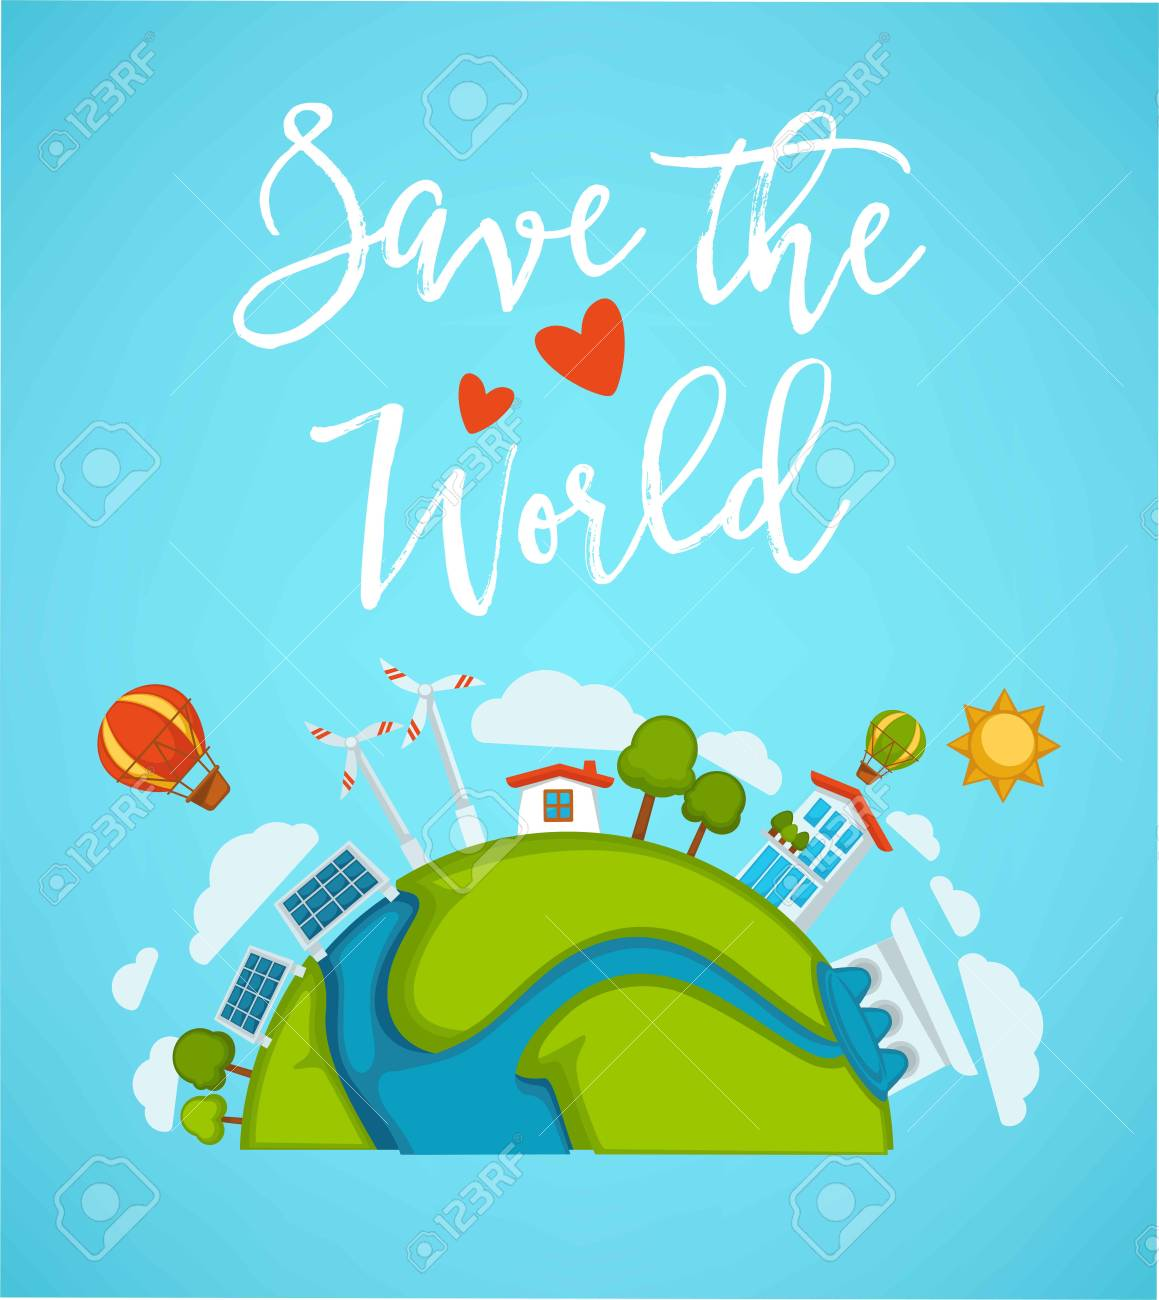 Save world planet or green earth and eco planet concept poster. Vector design of environment ecology and energy saving for earth conservation and nature protection